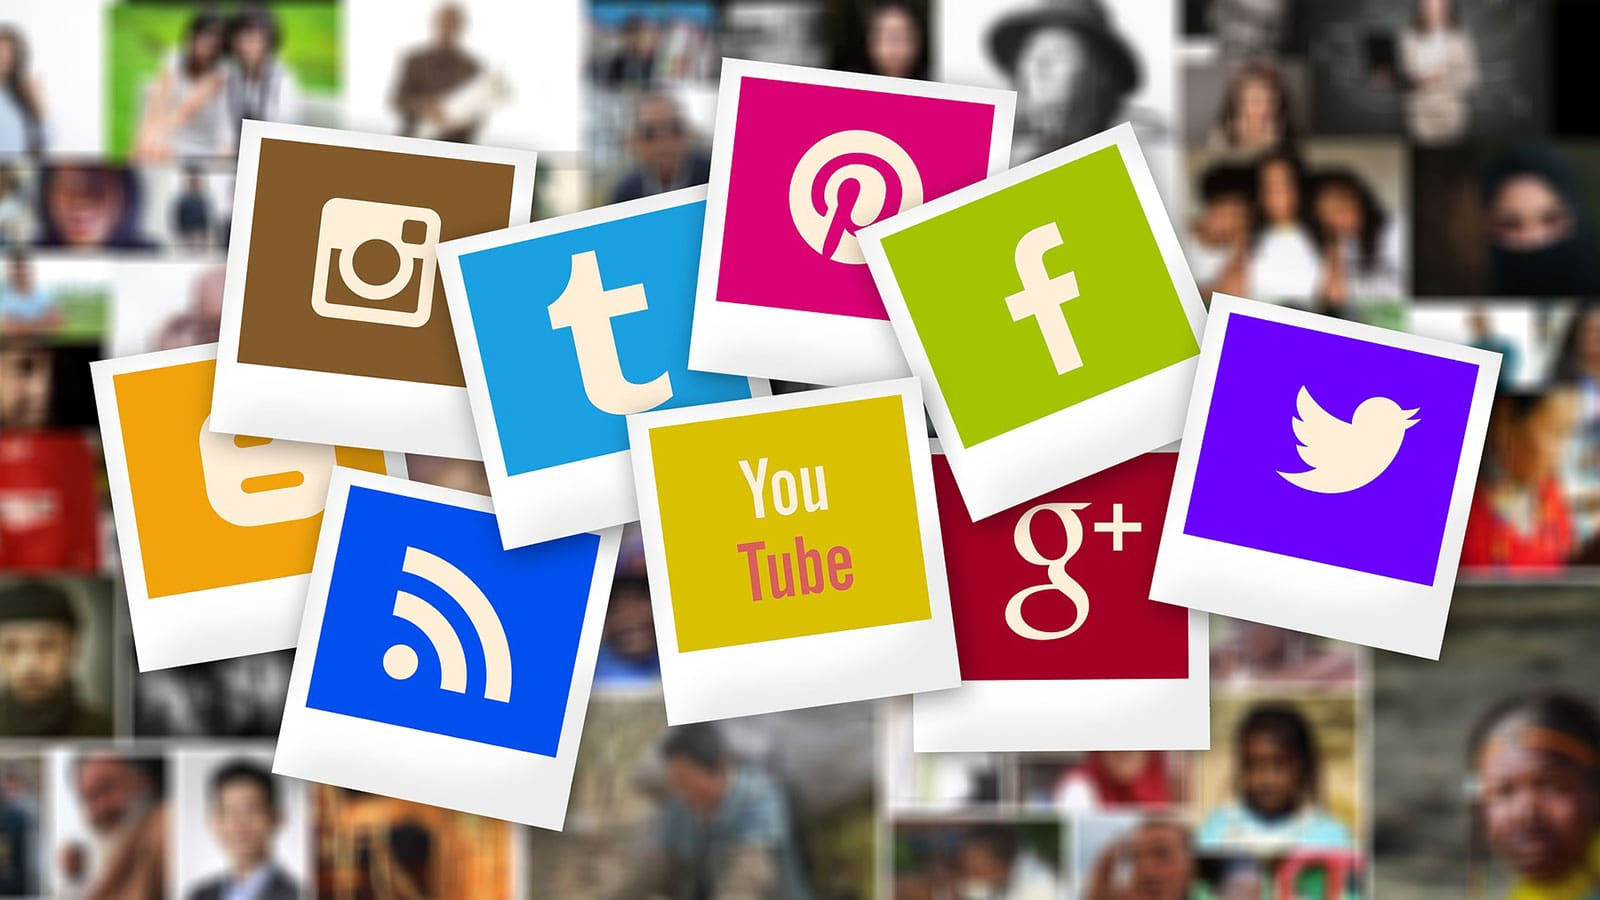 Does Your Company Exist Without Social Media Marketing?